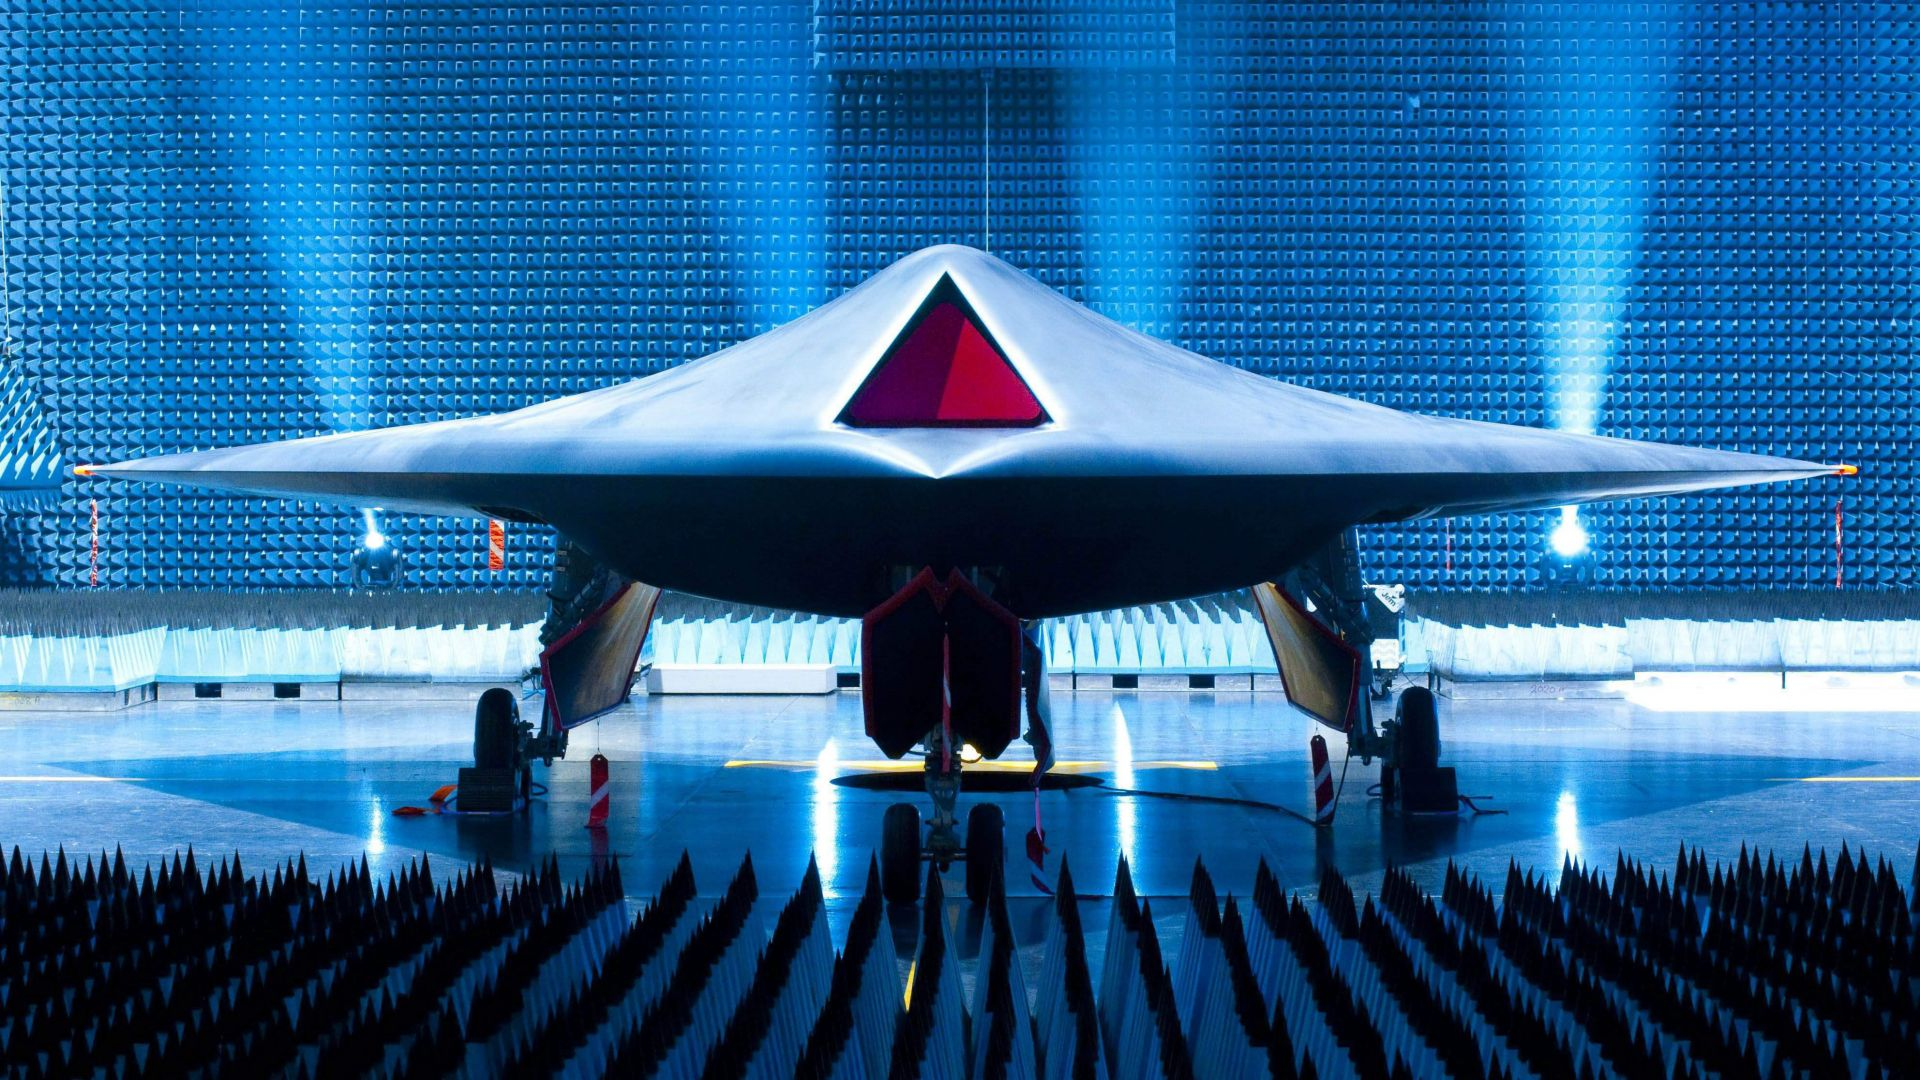 Taranis, Raptor, BAE Systems, British Army, UAV, stealth technology, stealth, UCAV,  (horizontal)